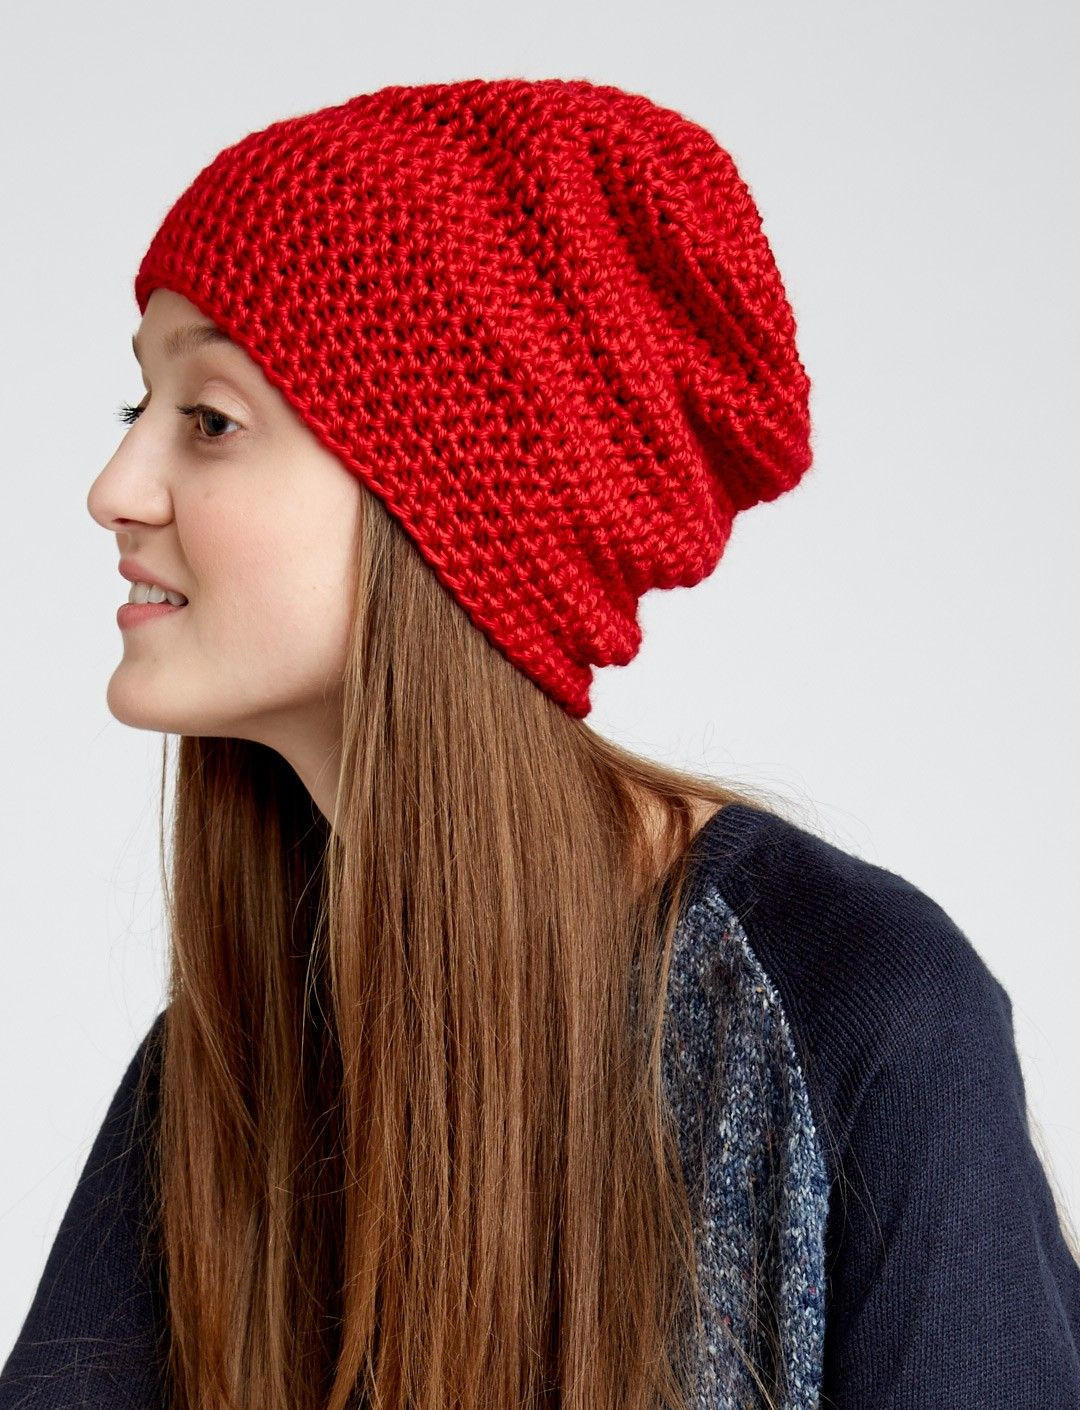 Luxury Free Slouchy Beanie Pattern Intended for Beginners and It Slouchy Beanie Crochet Pattern Free Of Awesome 45 Pics Slouchy Beanie Crochet Pattern Free